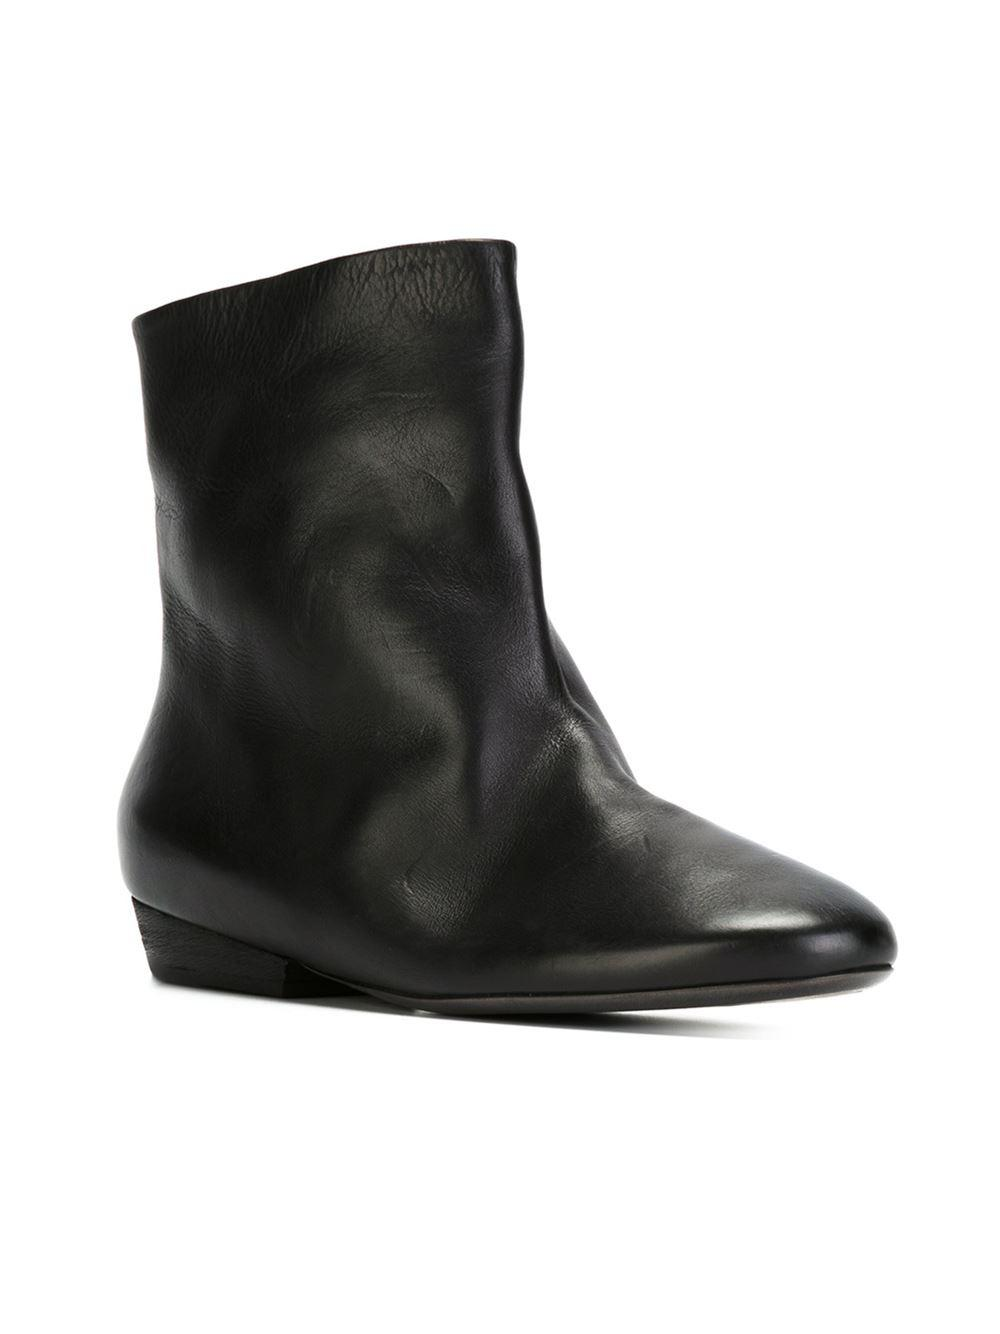 393366bf6512c Lyst - Marsèll - Flat Ankle Boots - Women - Lamb Skin leather rubber - 40  in Black